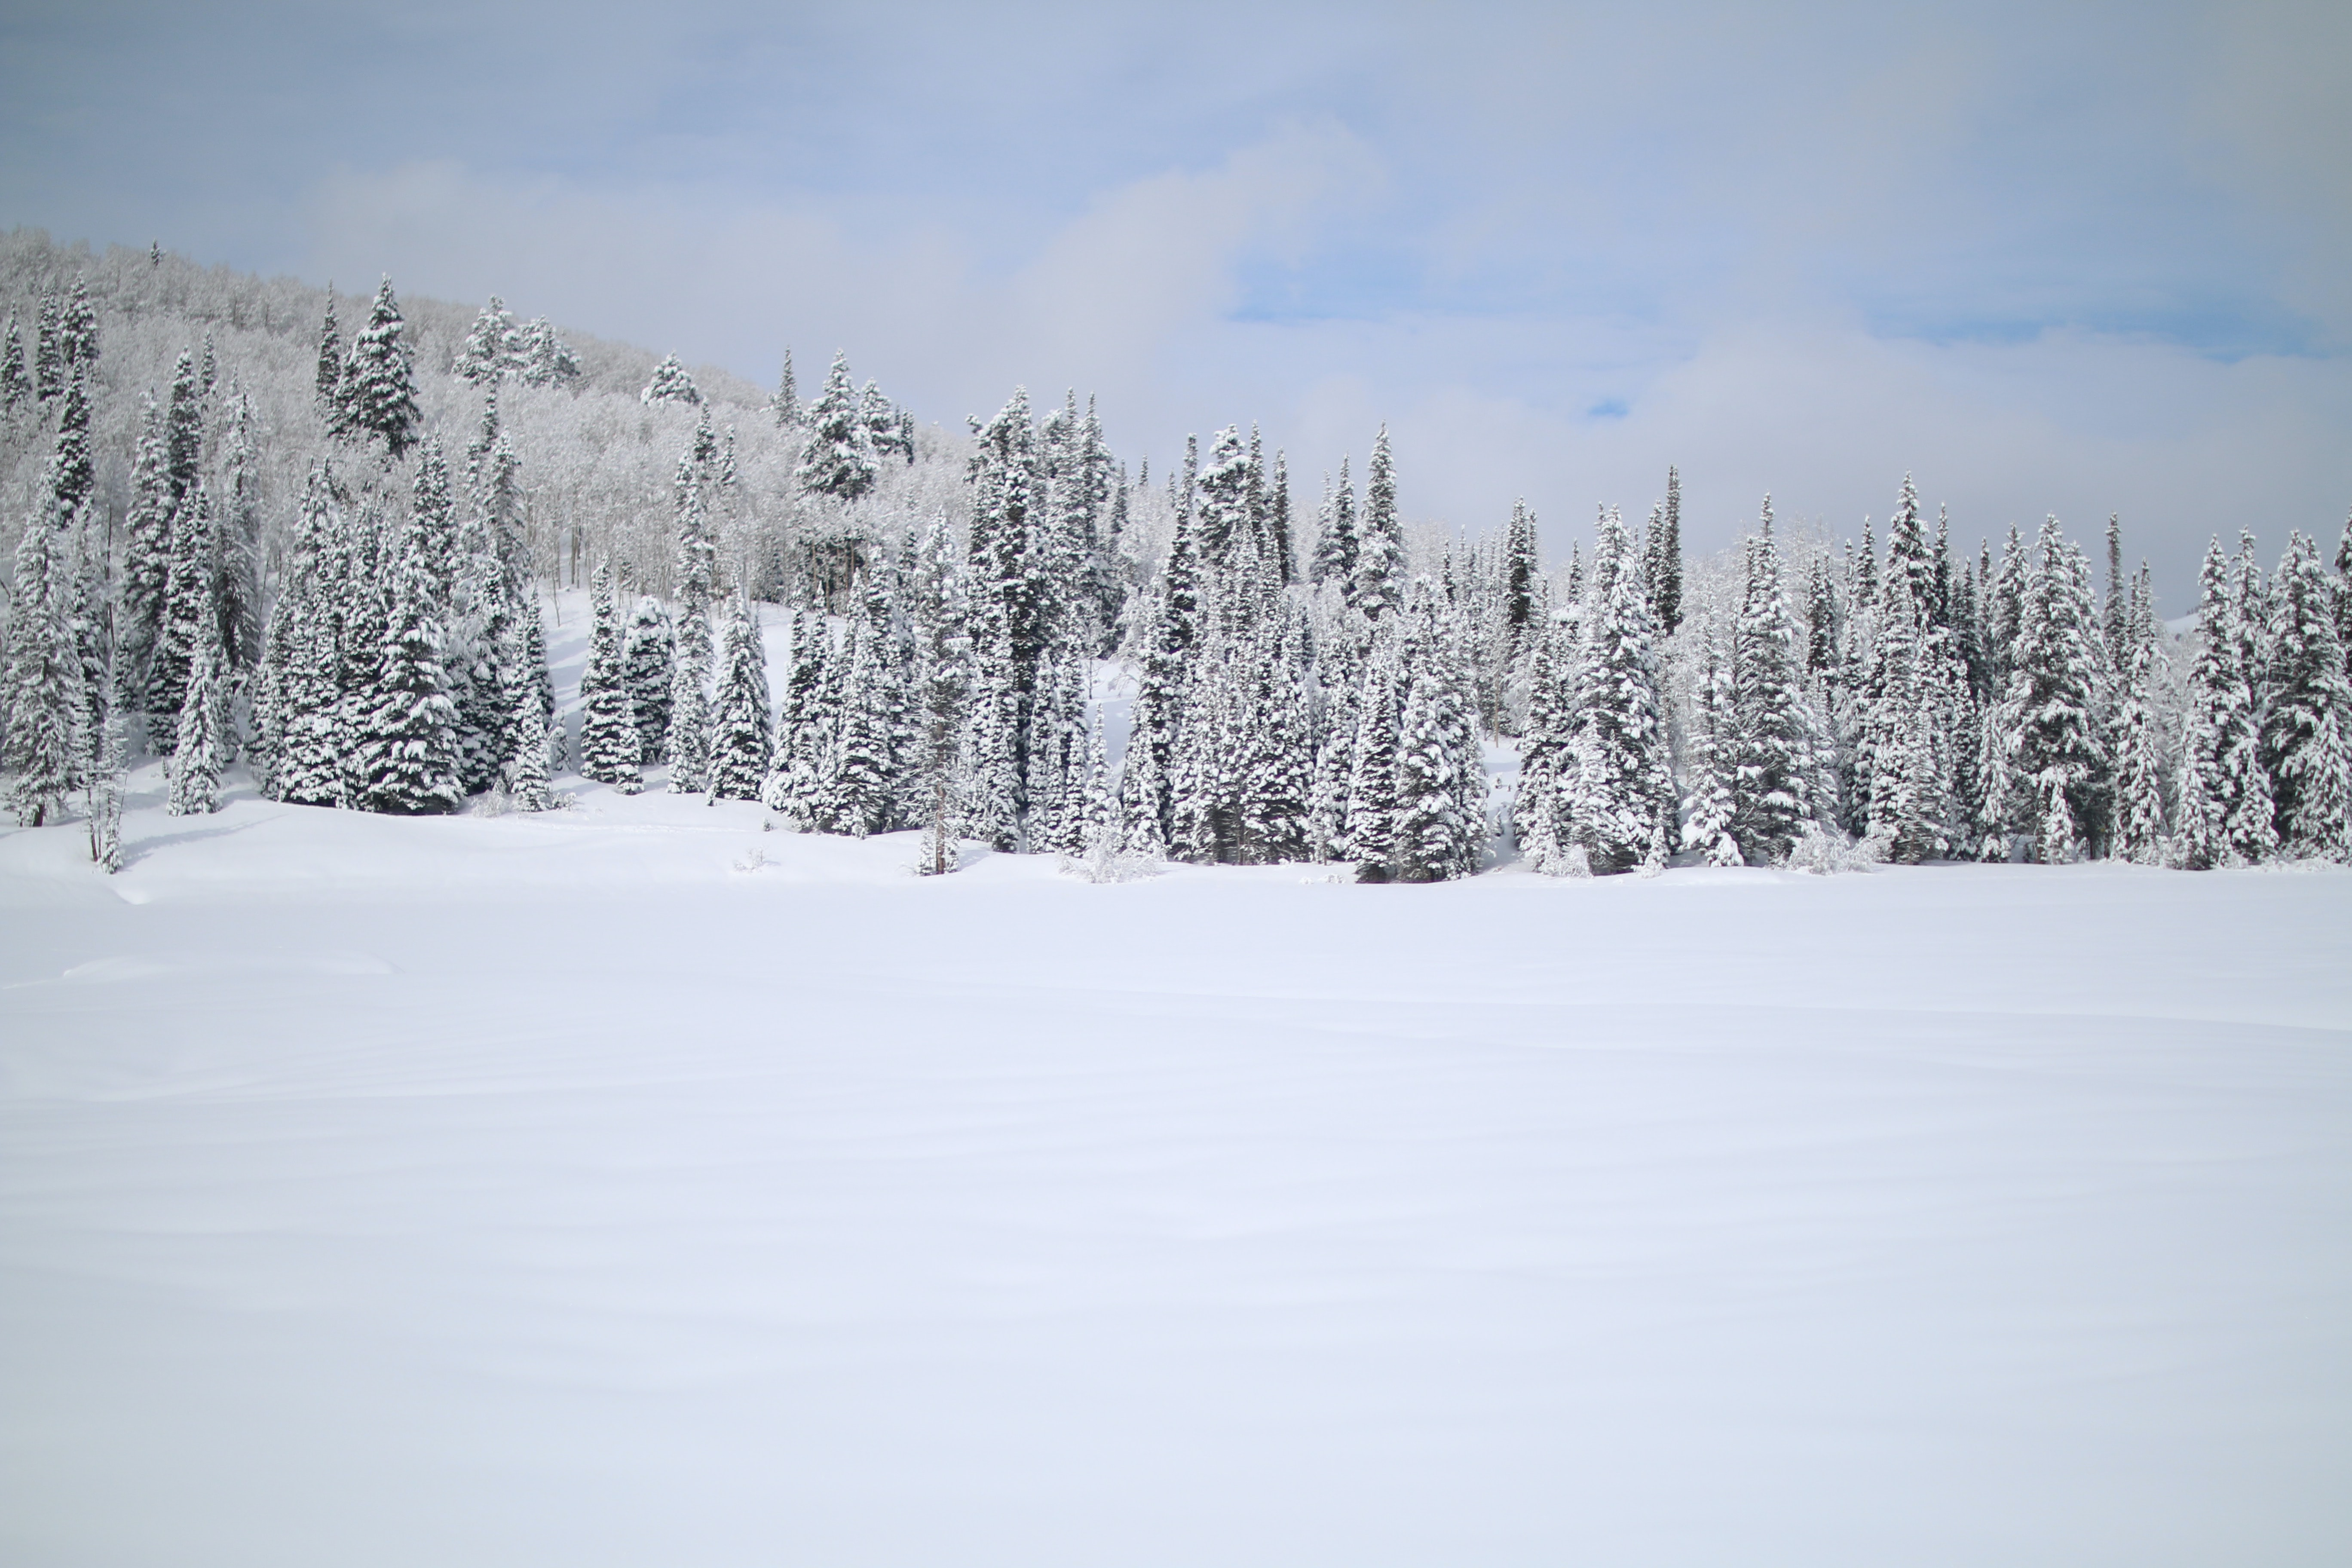 A forestscape image on a cloudy day in Solitude Nordic Center in Utah